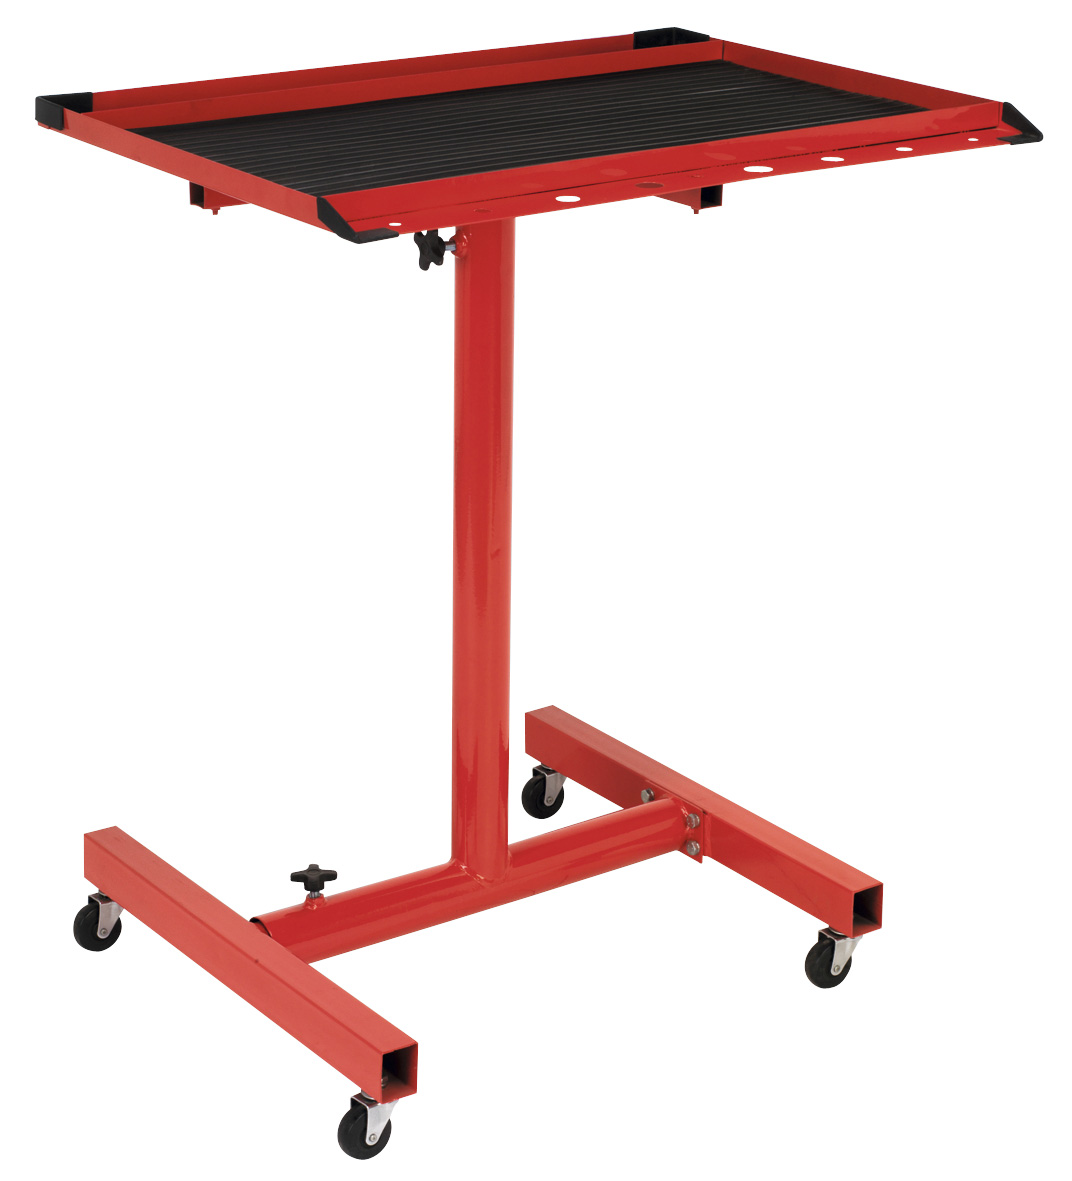 Sealey AP200 mobile work station - adjustable height